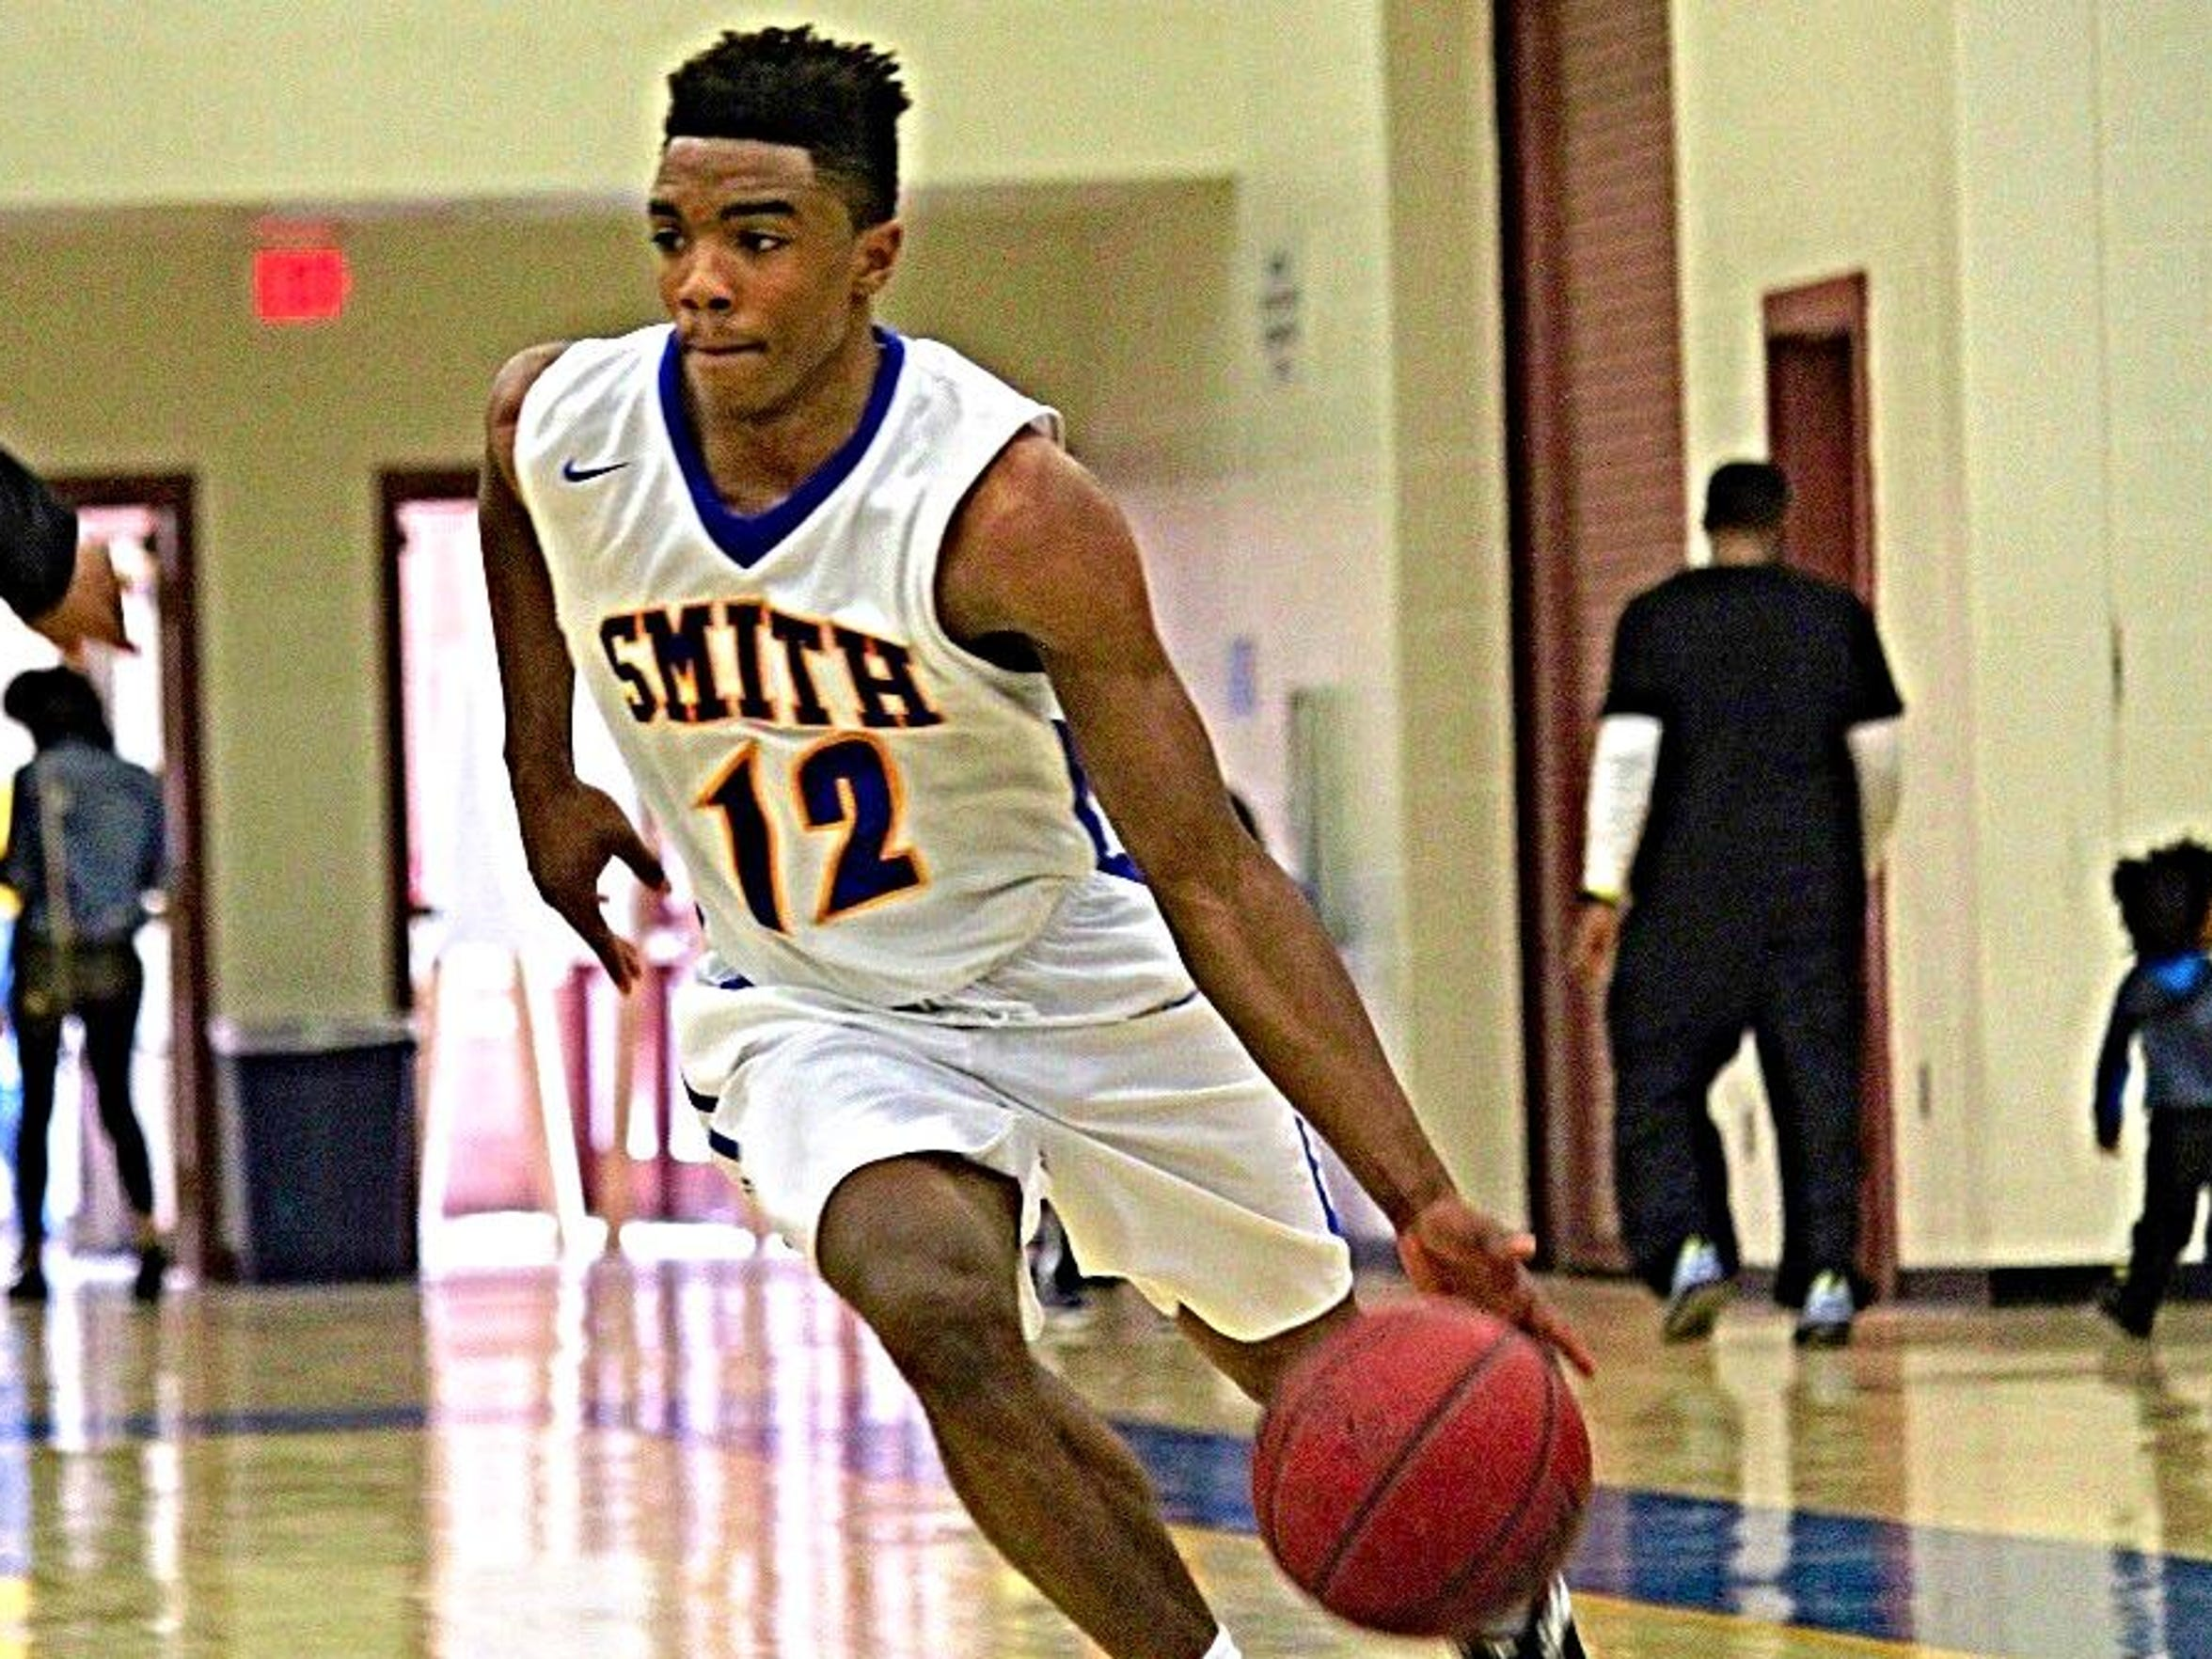 Incoming Grambling point guard Nigel Ribeiro will compete